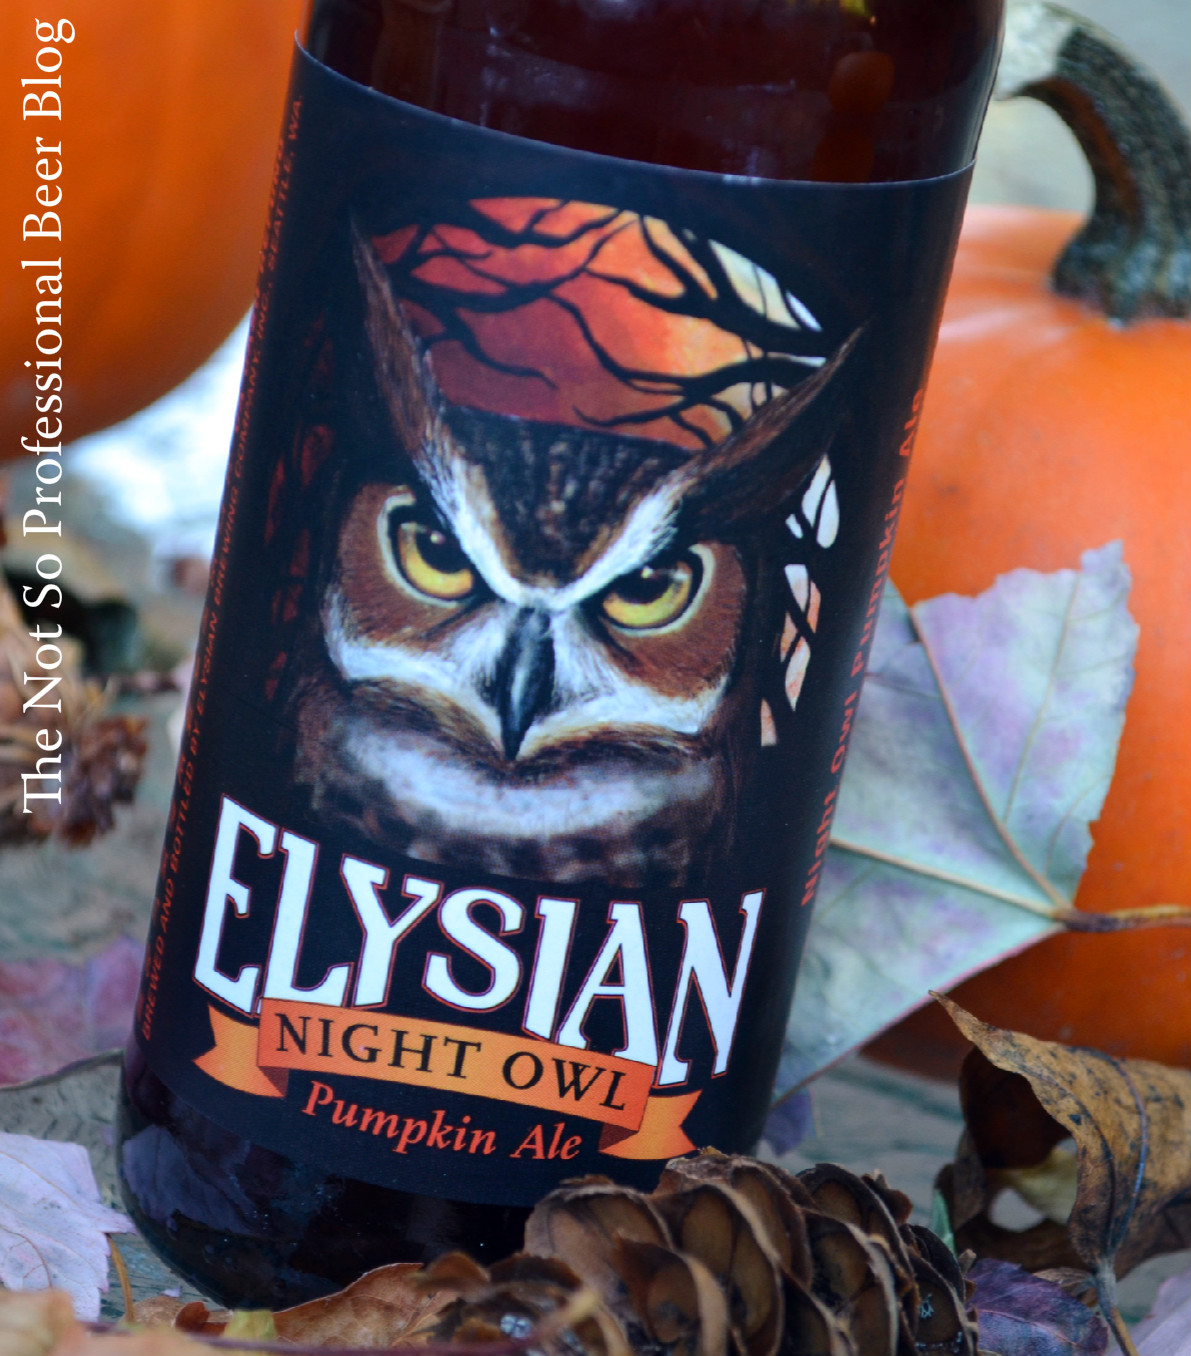 red chair nwpa clone weird arm chairs the not so professional beer blog review night owl pumpkin ale elysian brewing